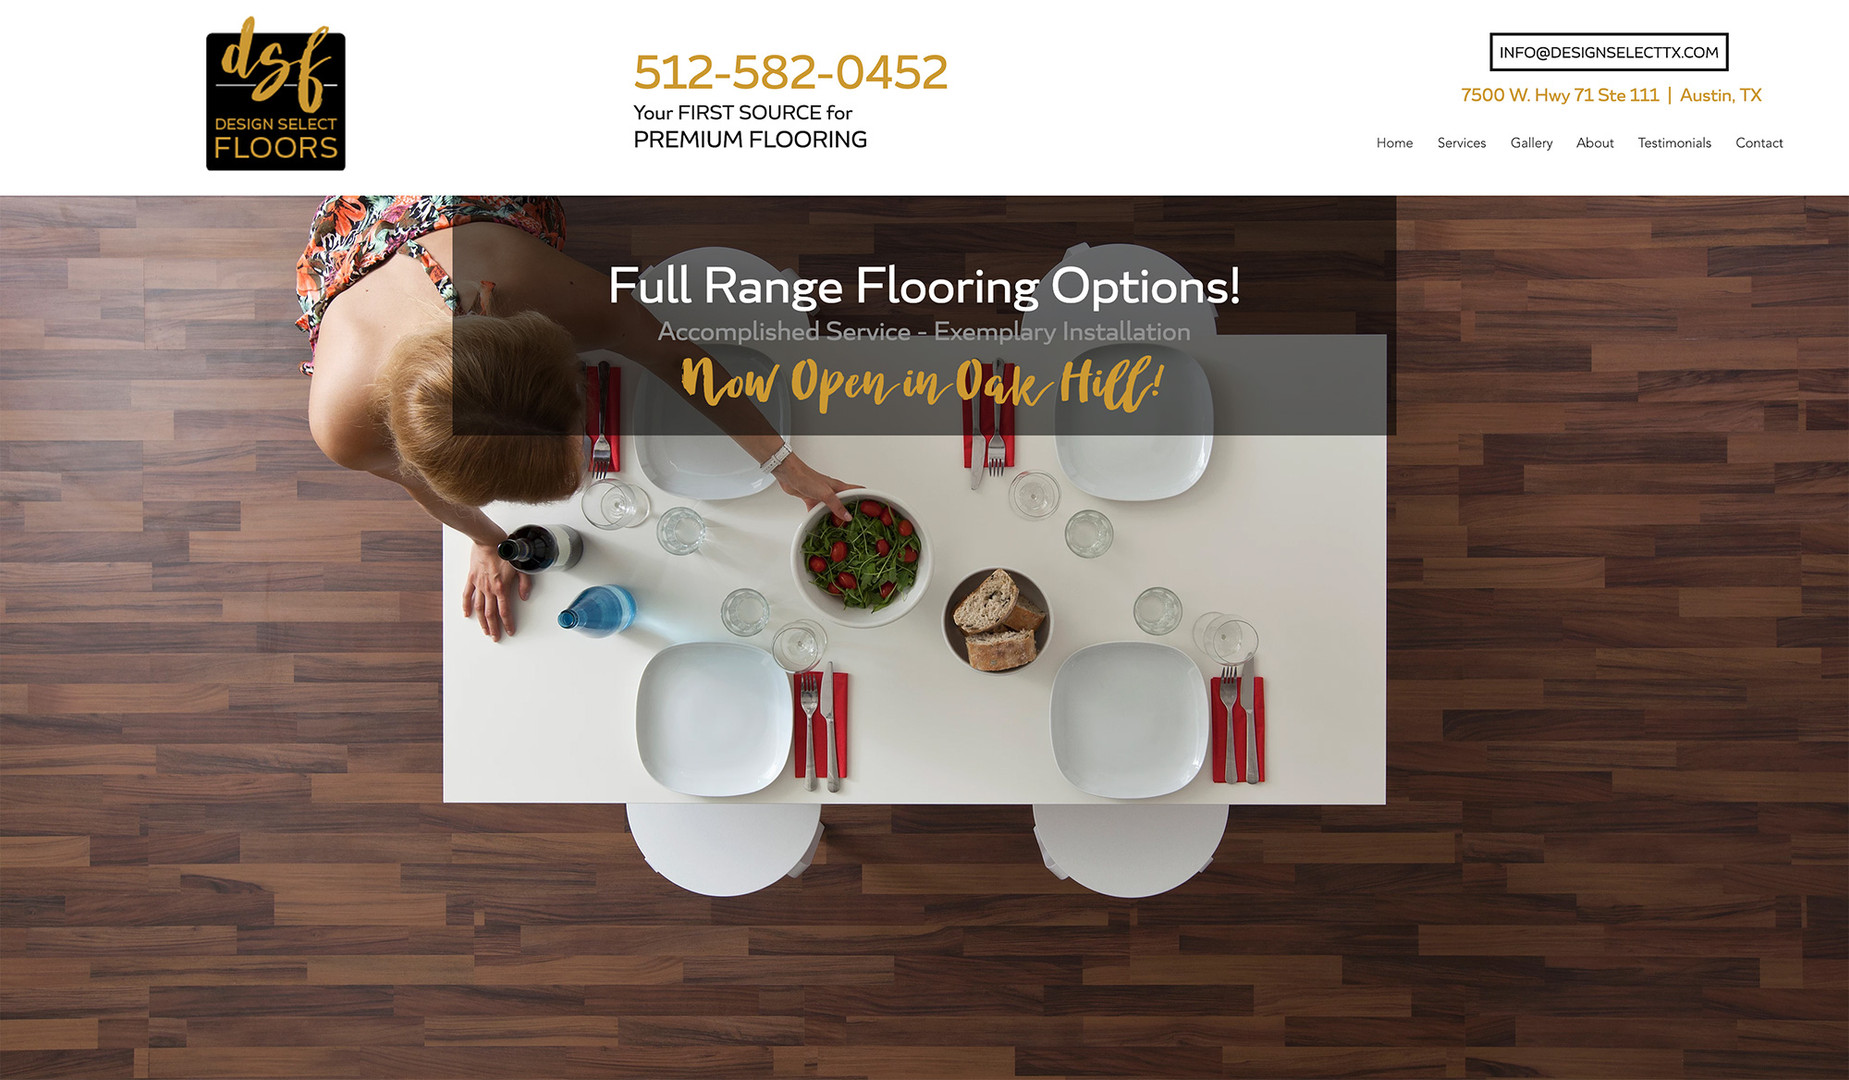 Design Select Floors